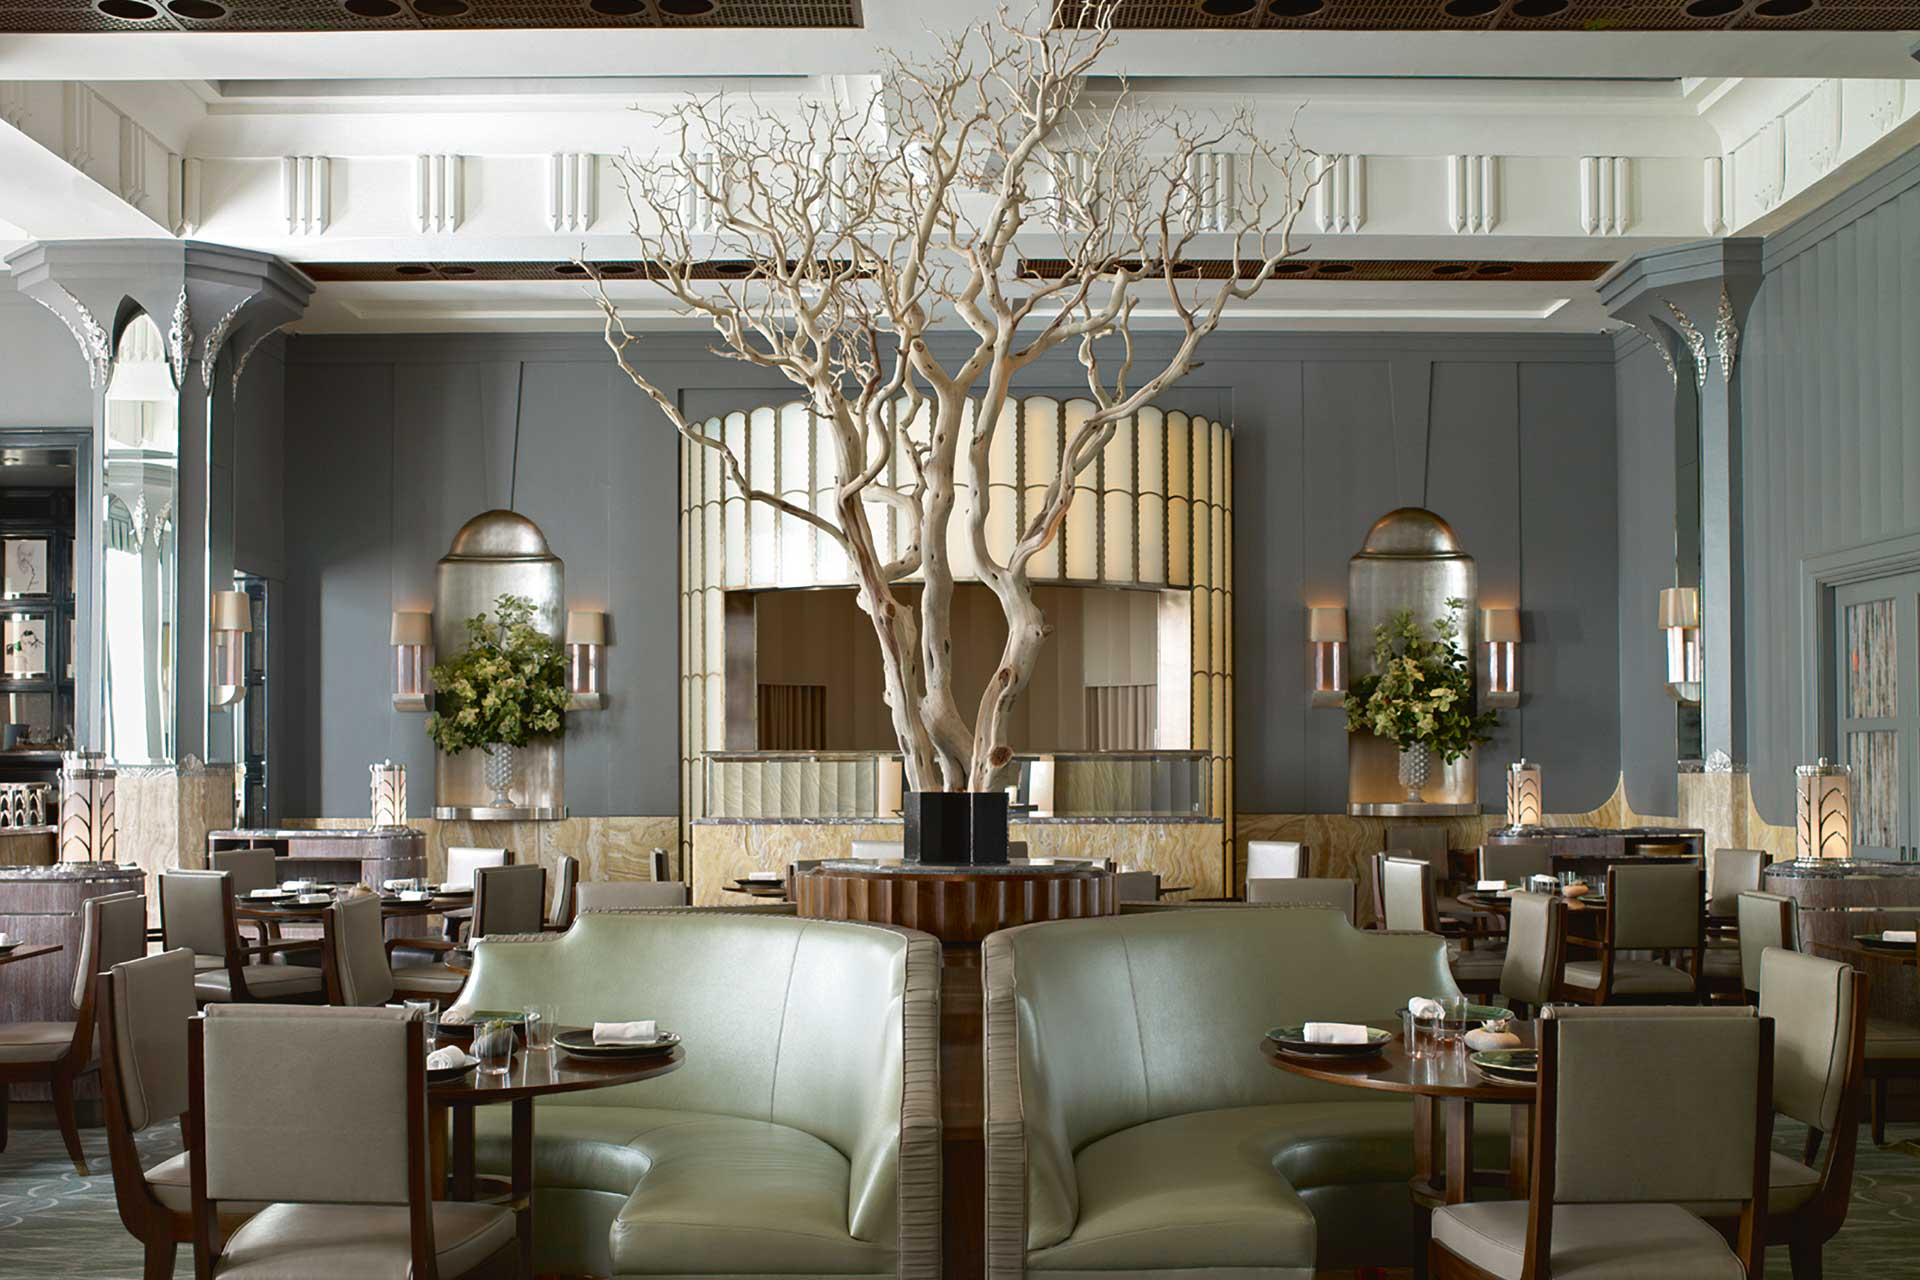 Simon Rogan's Fera restaurant in iconic hotel Claridge's